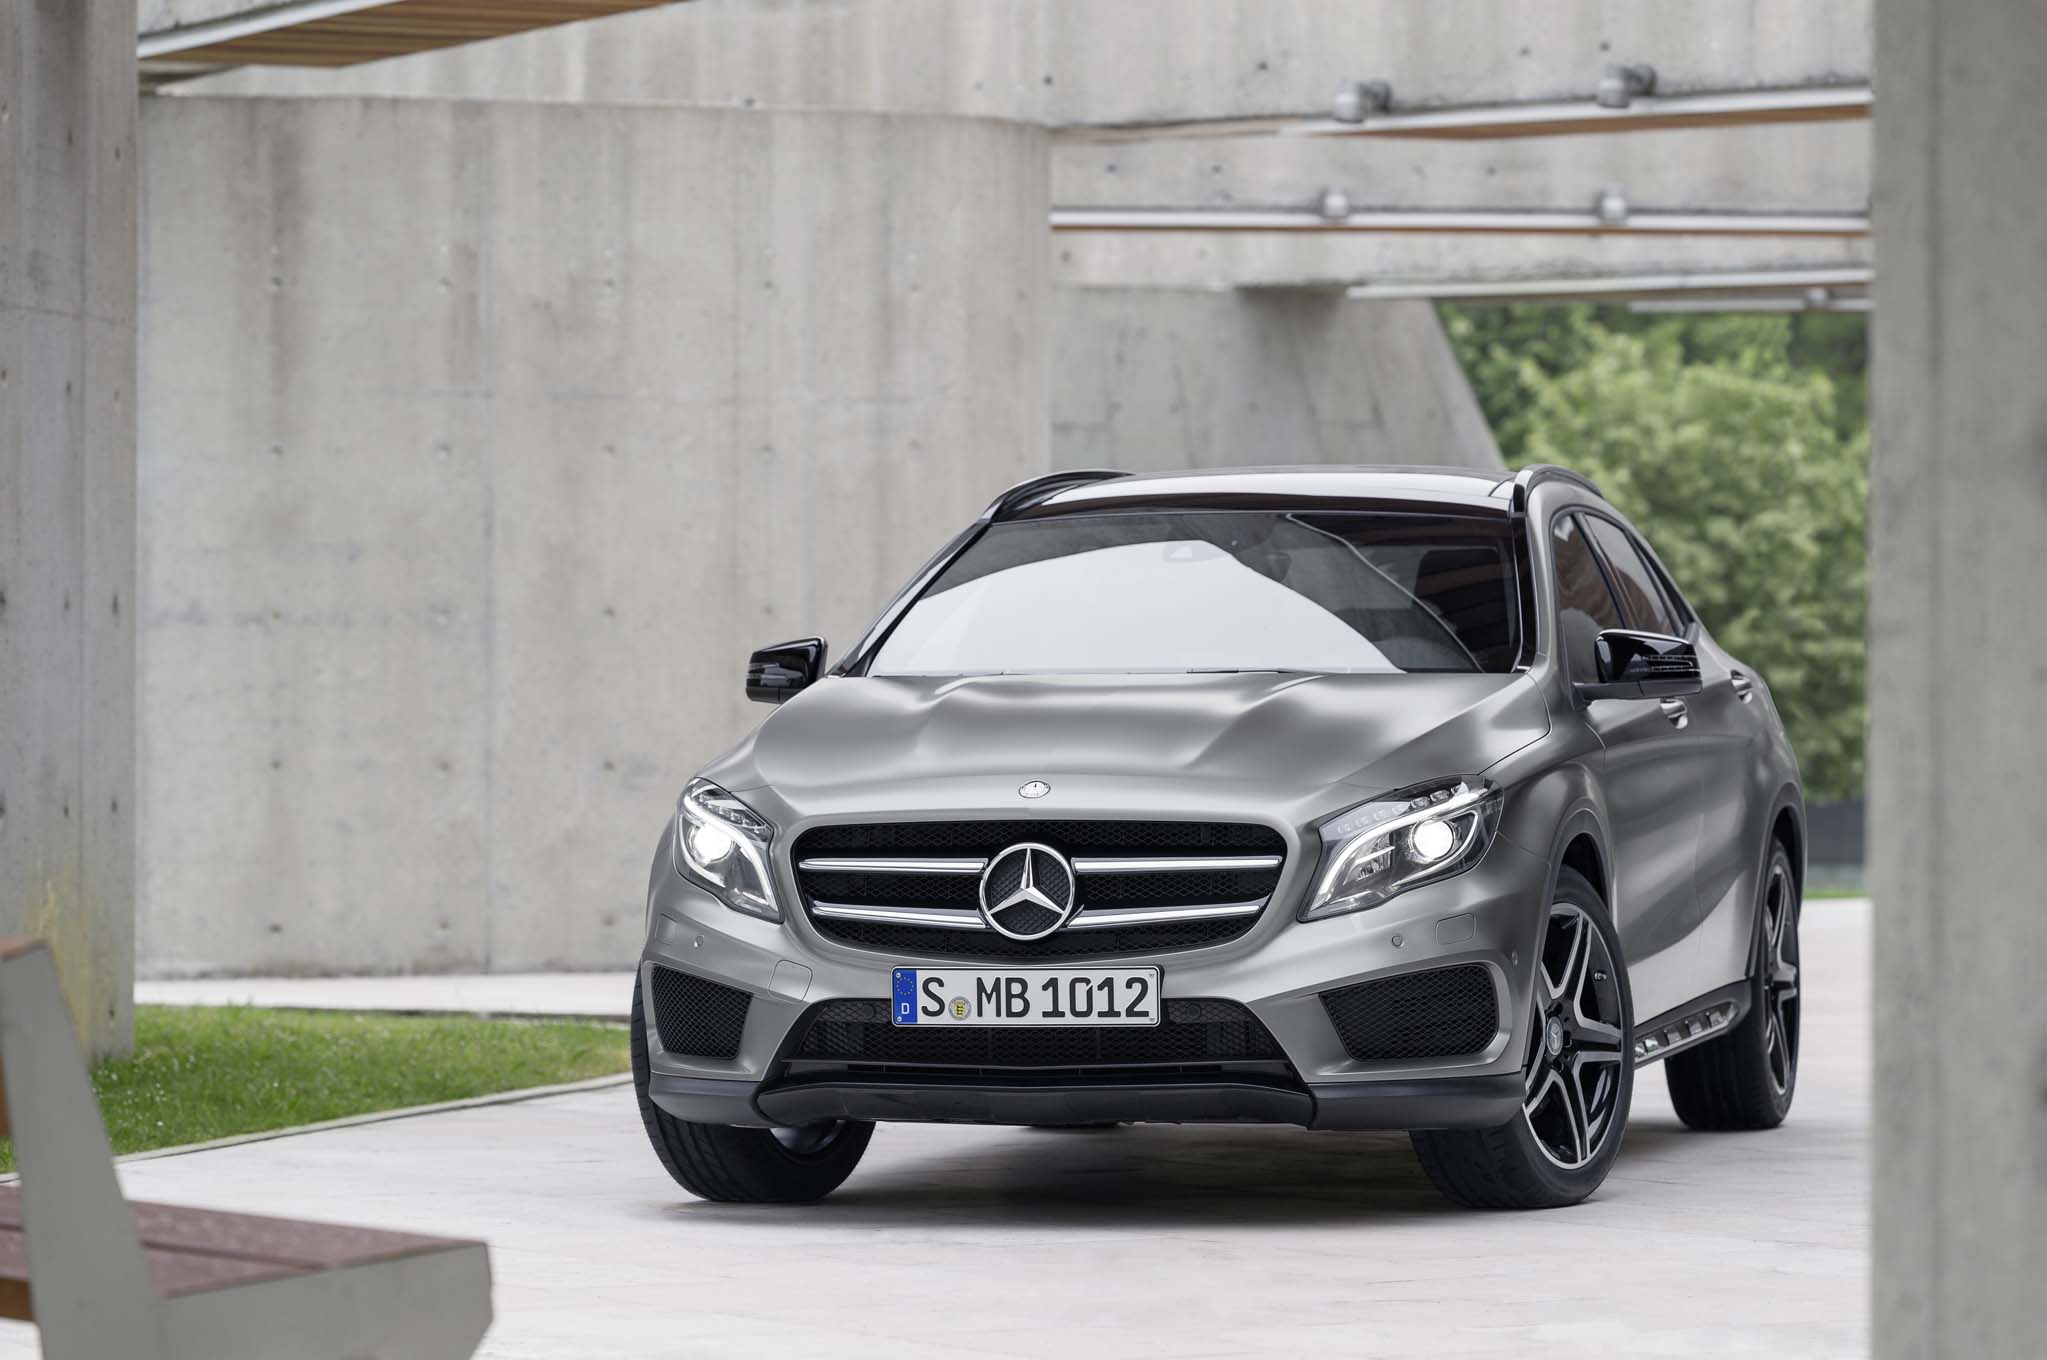 2015 mercedes benz gla class starts at 32 225 gla45 amg at 49 225. Black Bedroom Furniture Sets. Home Design Ideas